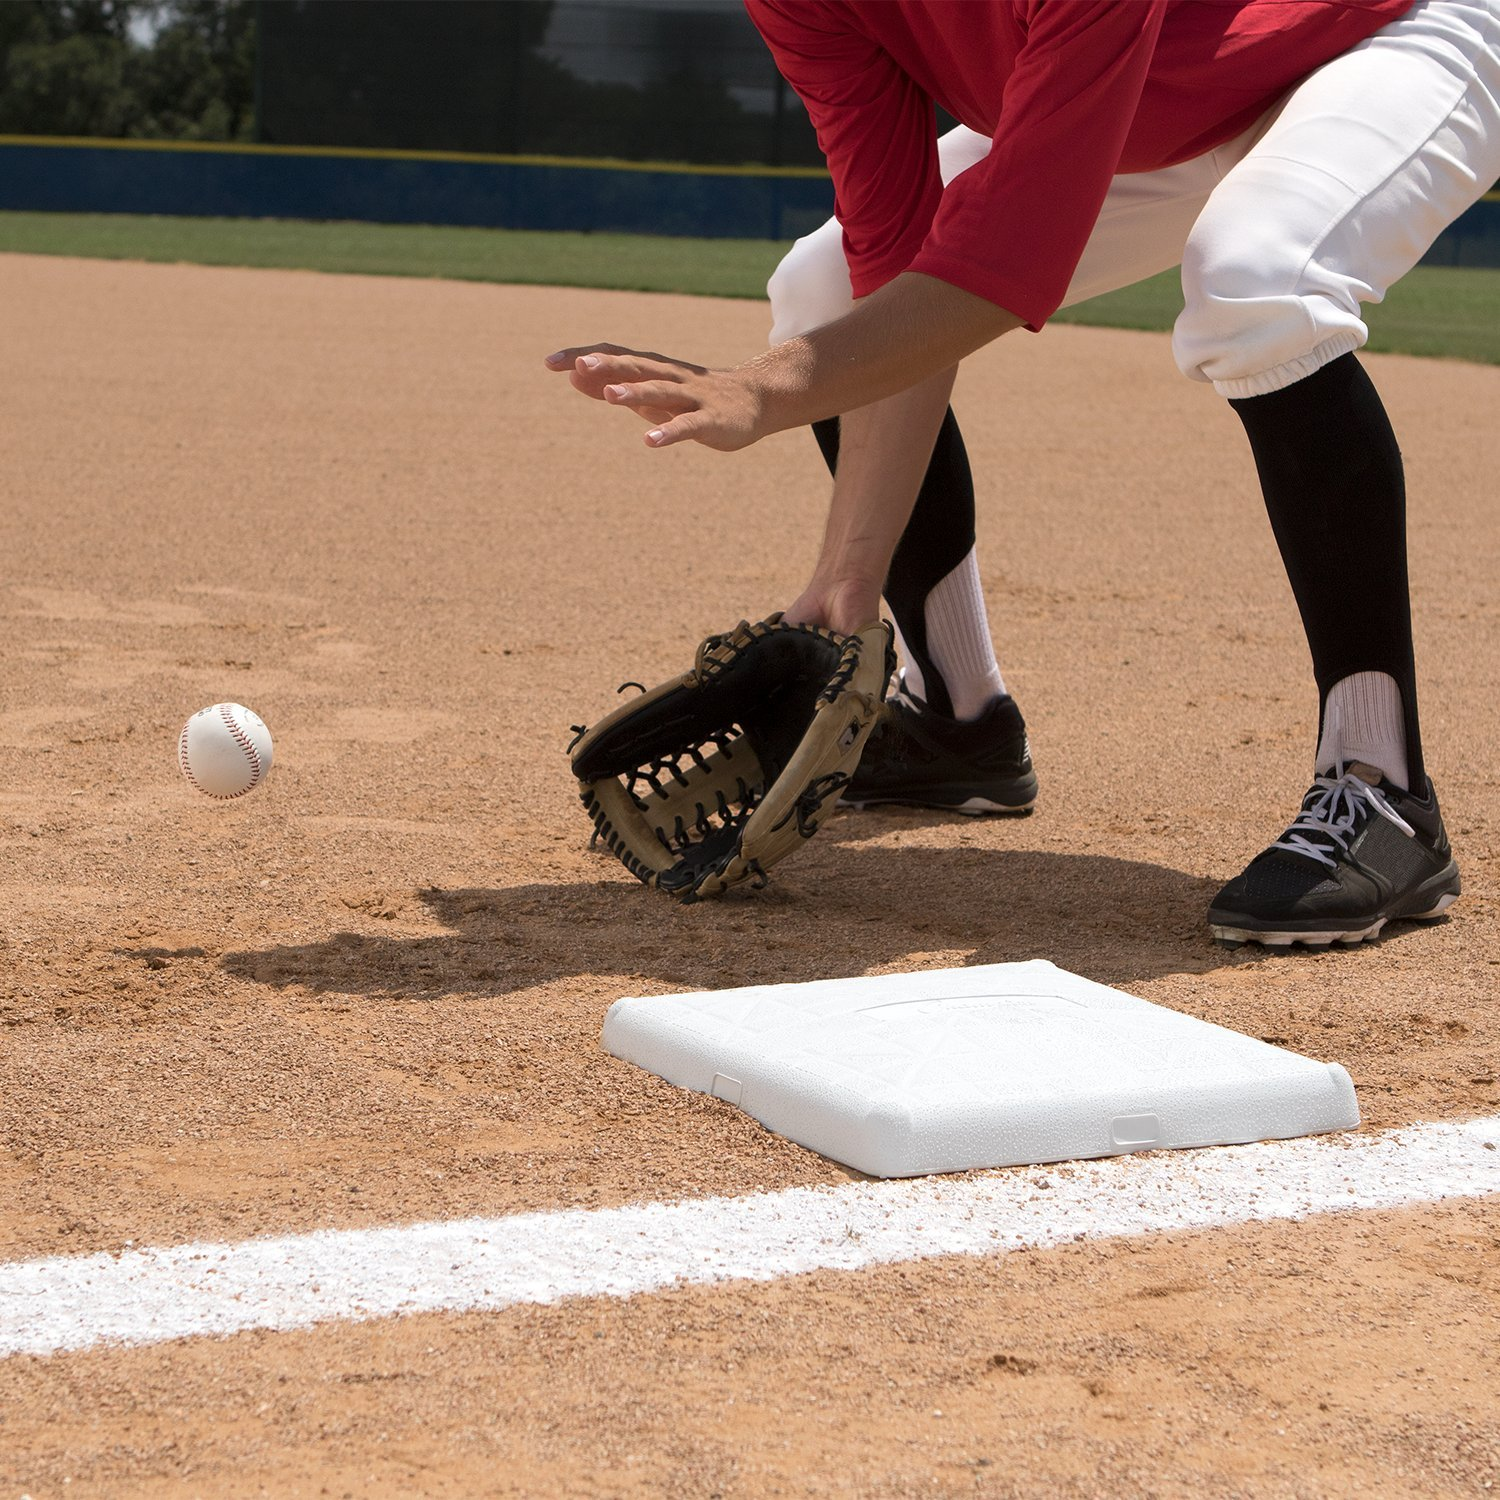 Champion Sports Impact Baseball Bases: Hollywood Type Safety Collapsible Bases with Anchor Plug - Sports Equipment Bags for Youth Baseball & Softball by Champion Sports (Image #6)